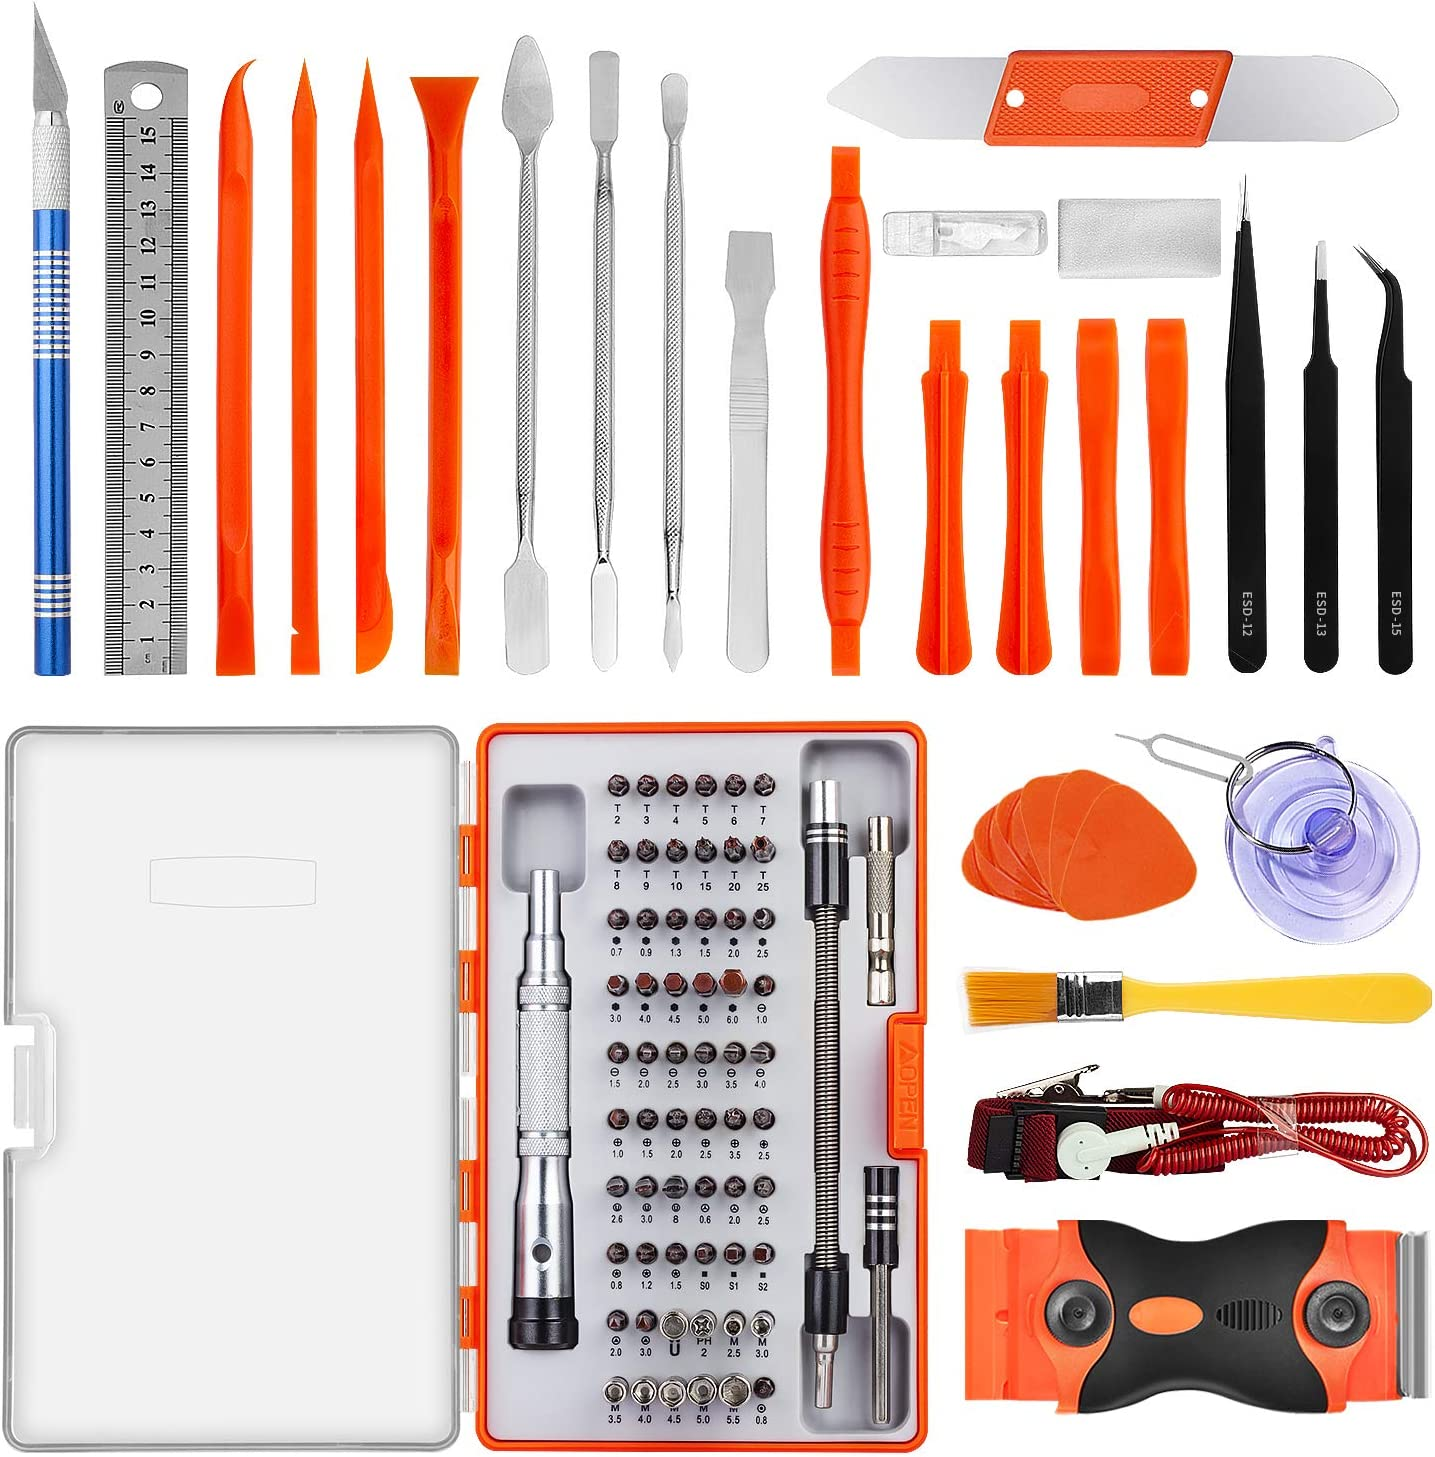 Xligo JM-8112 39 in1 Multifunctional Precision Screwdriver Set For Phone Laptop Digital Repair Screwdriver Bits Repair Tools Kit Set